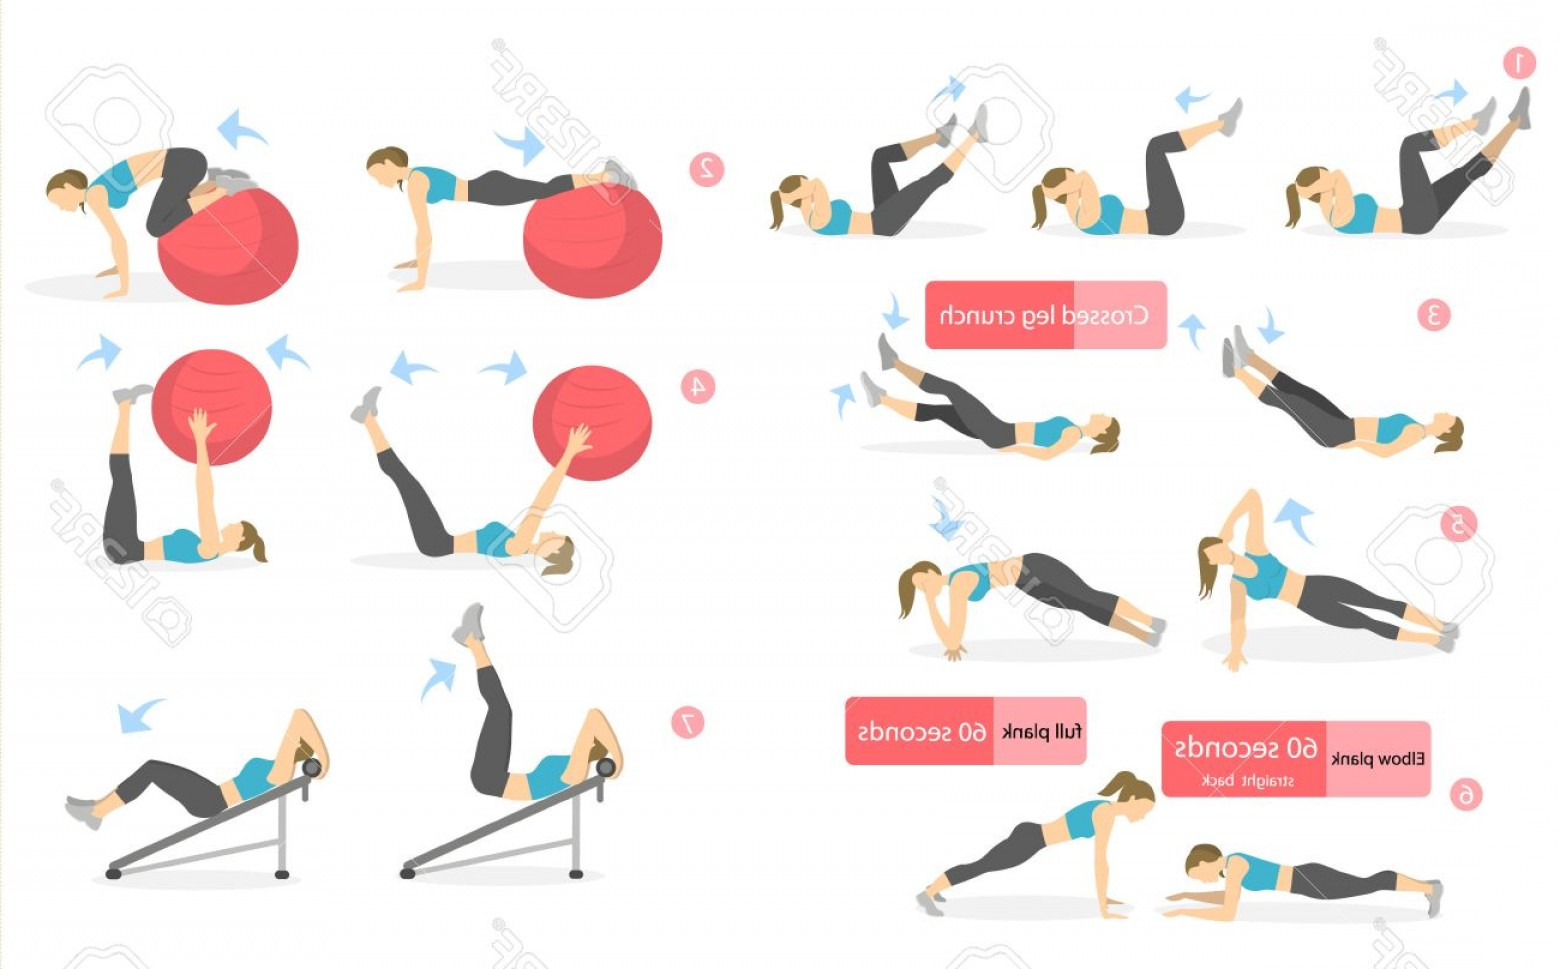 Pack 6 Vectorabs: Photostock Vector Abs Workout For Women Woman In Sport Outfit Doing Abs Exercises In Gym All Kinds Of Abdominal Traini